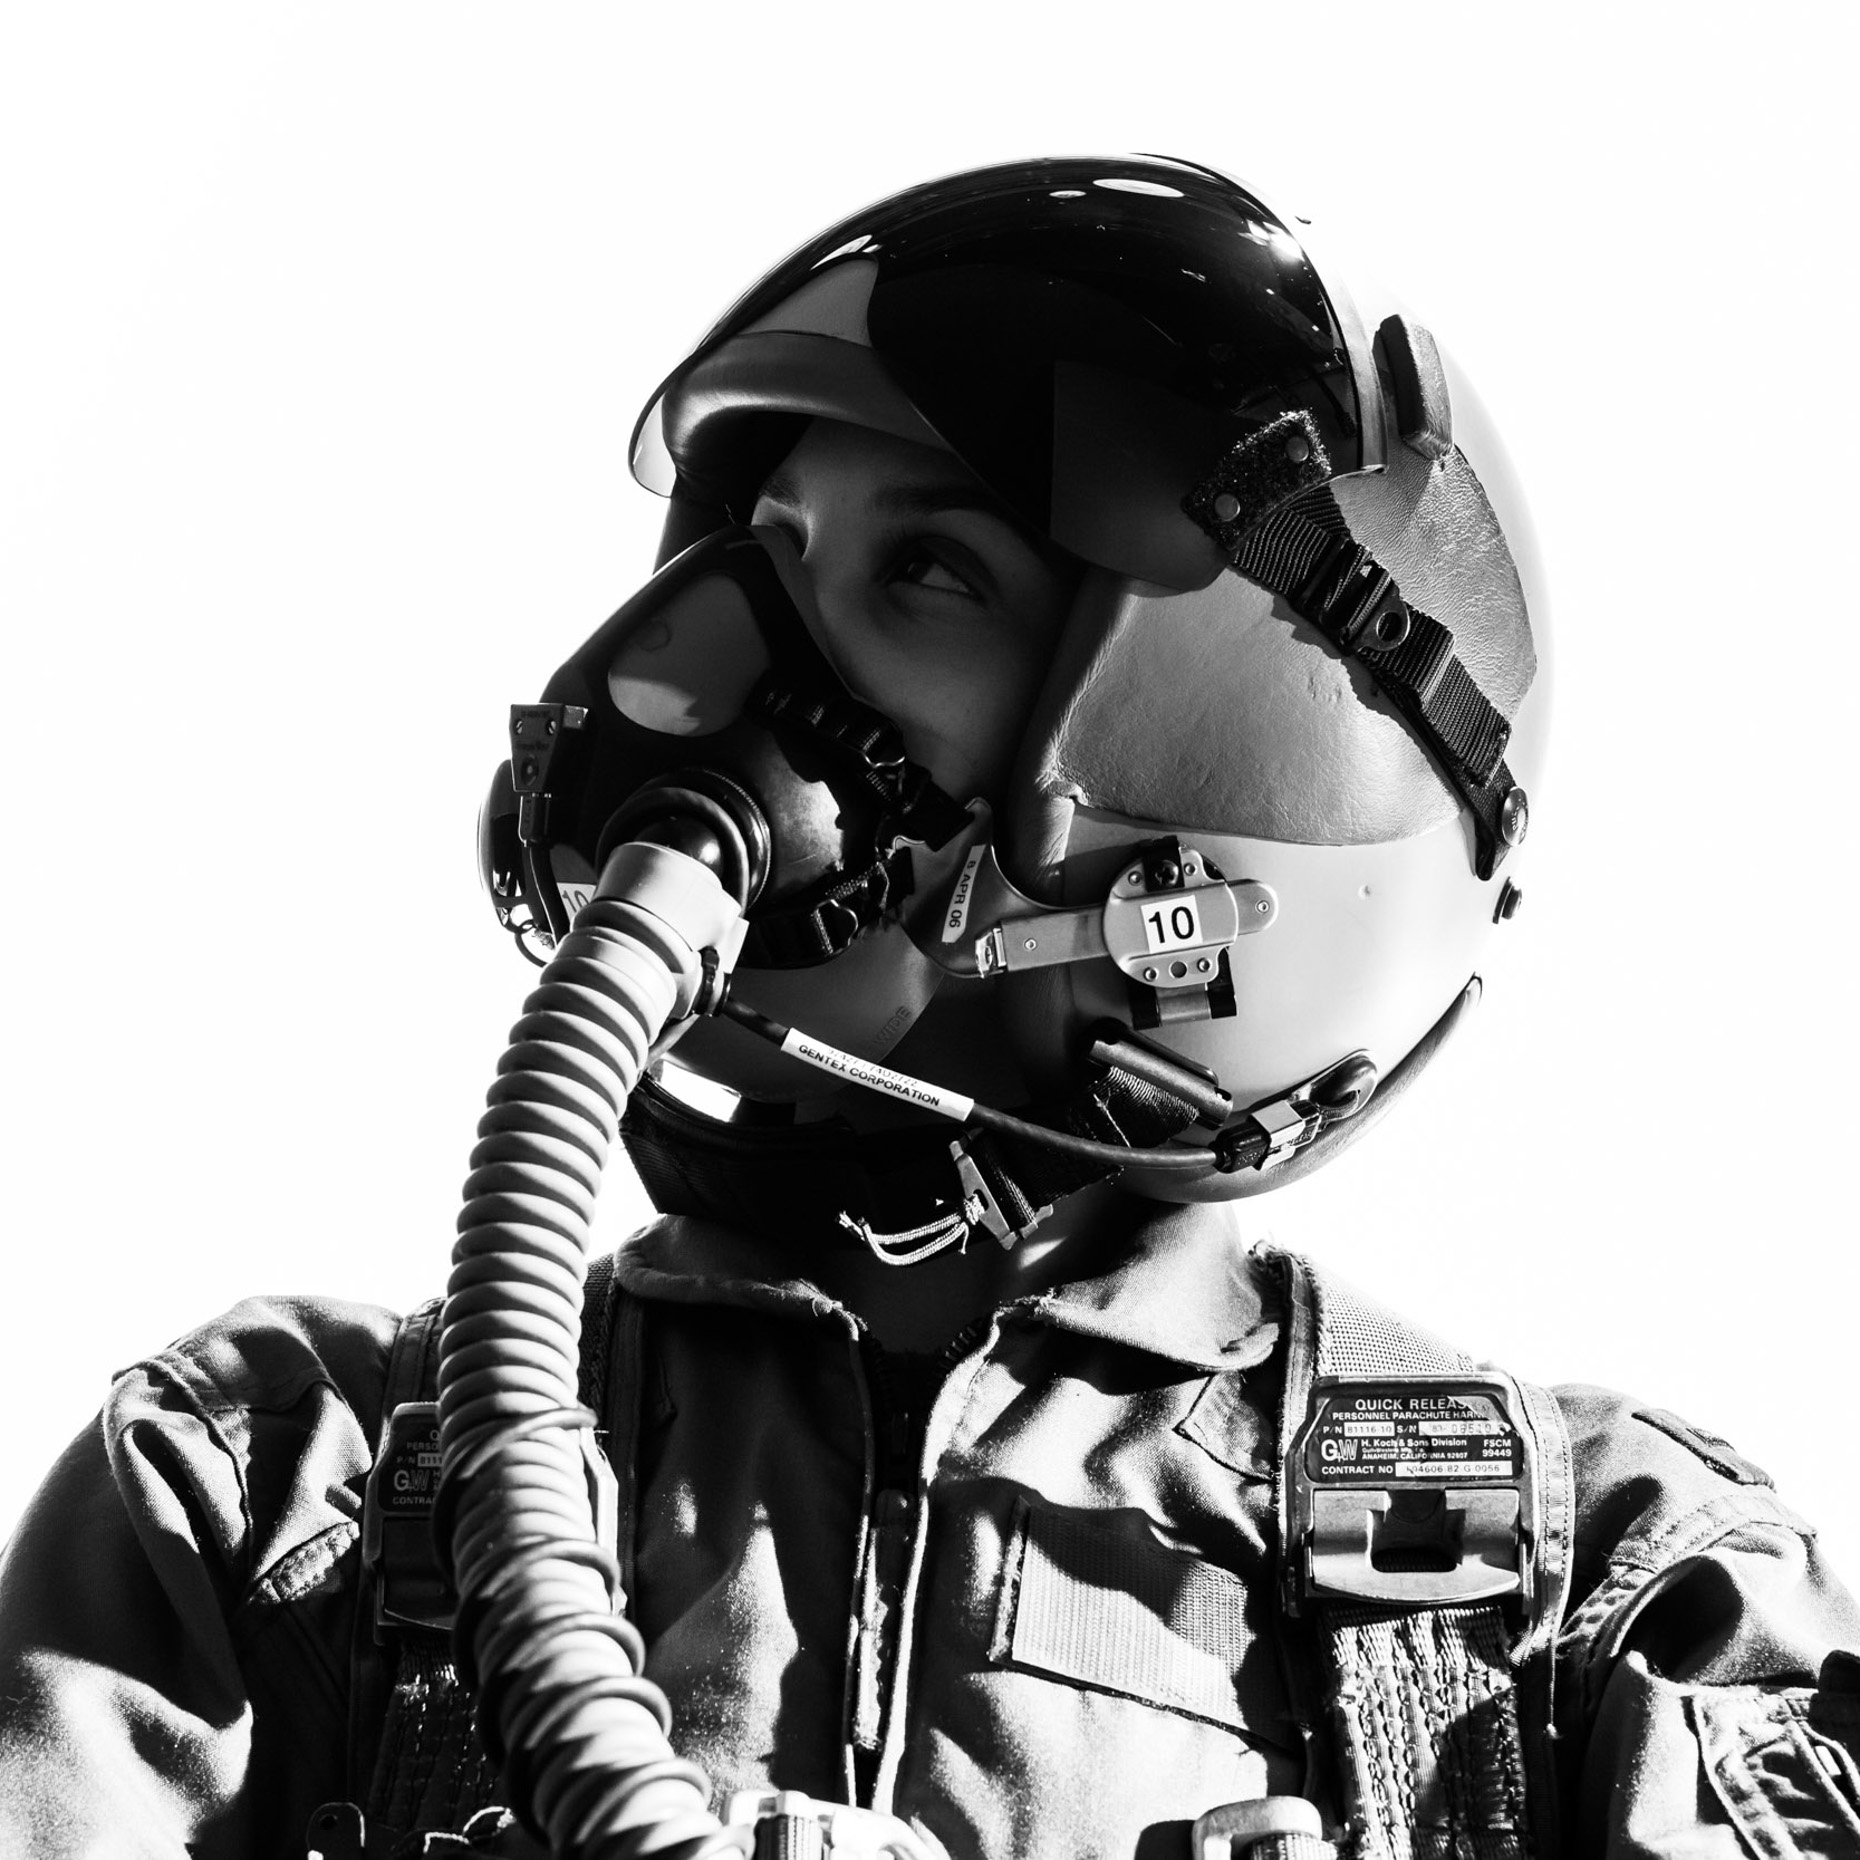 intense test pilot portrait for Northrop Grumman